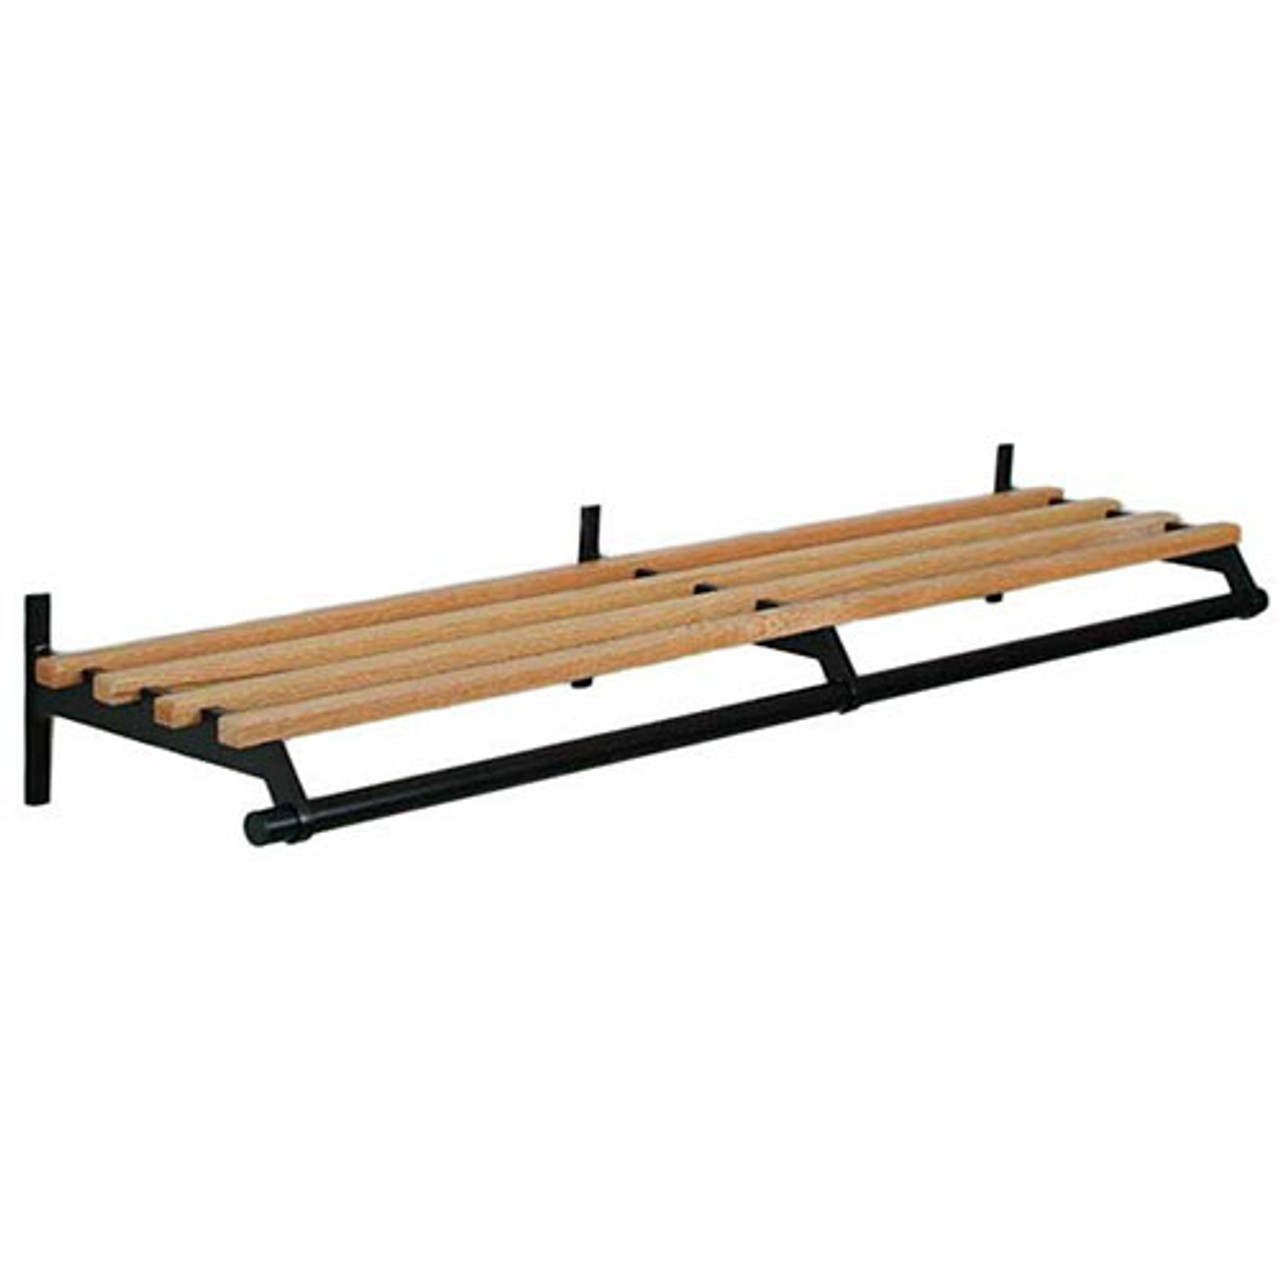 Unlimited Wall Wooden Coat Rack with Hanger Rod 102 Series - Image to Illustrate Design, Not to Scale